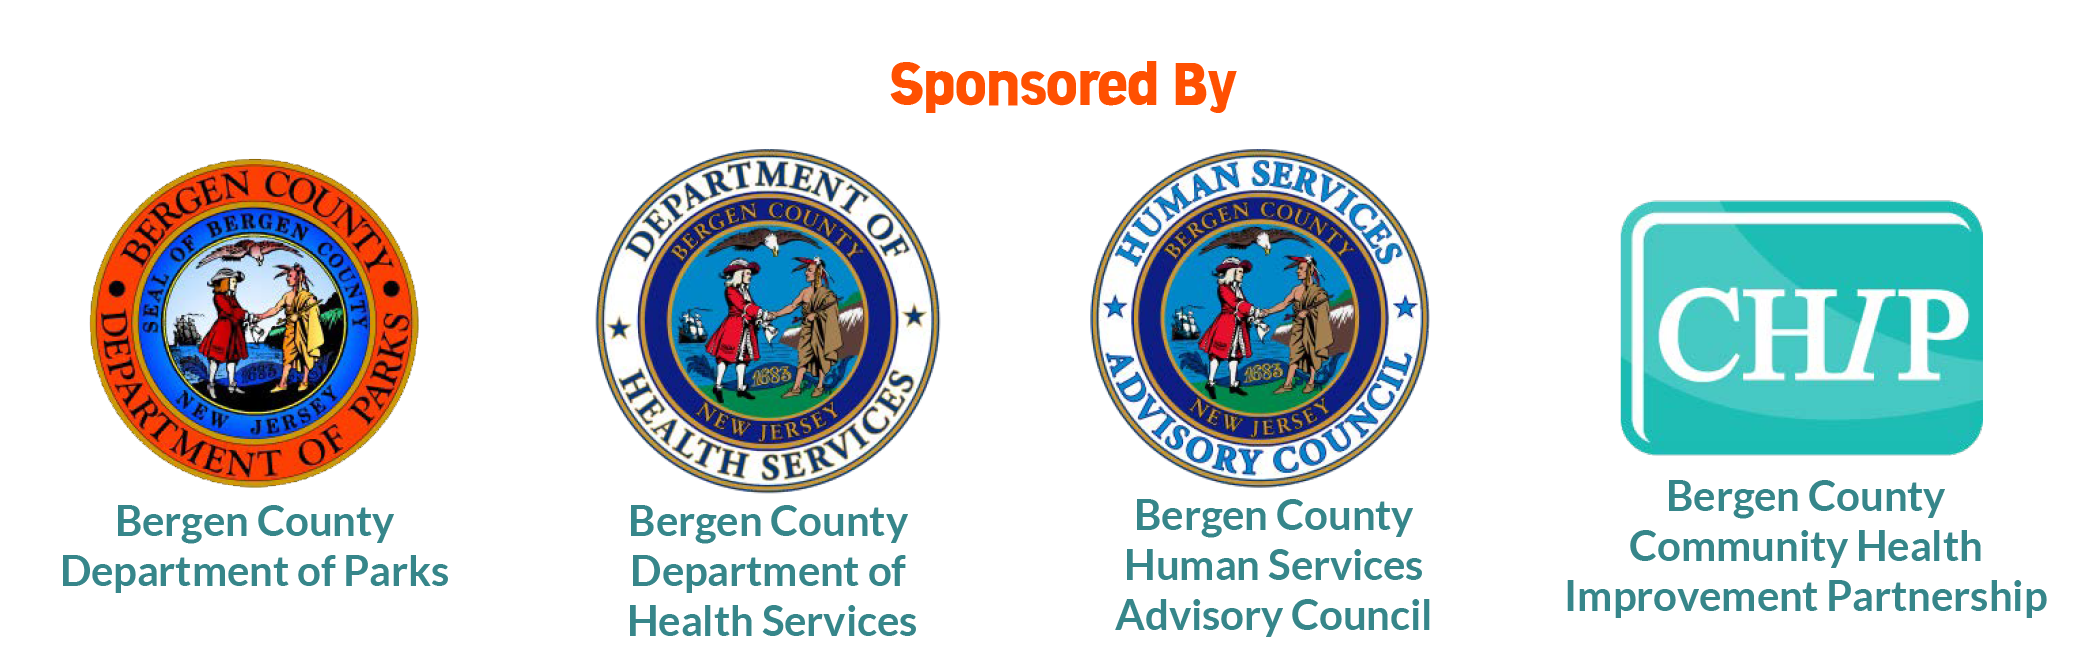 Bergen County Family Fun Fest Sponsors